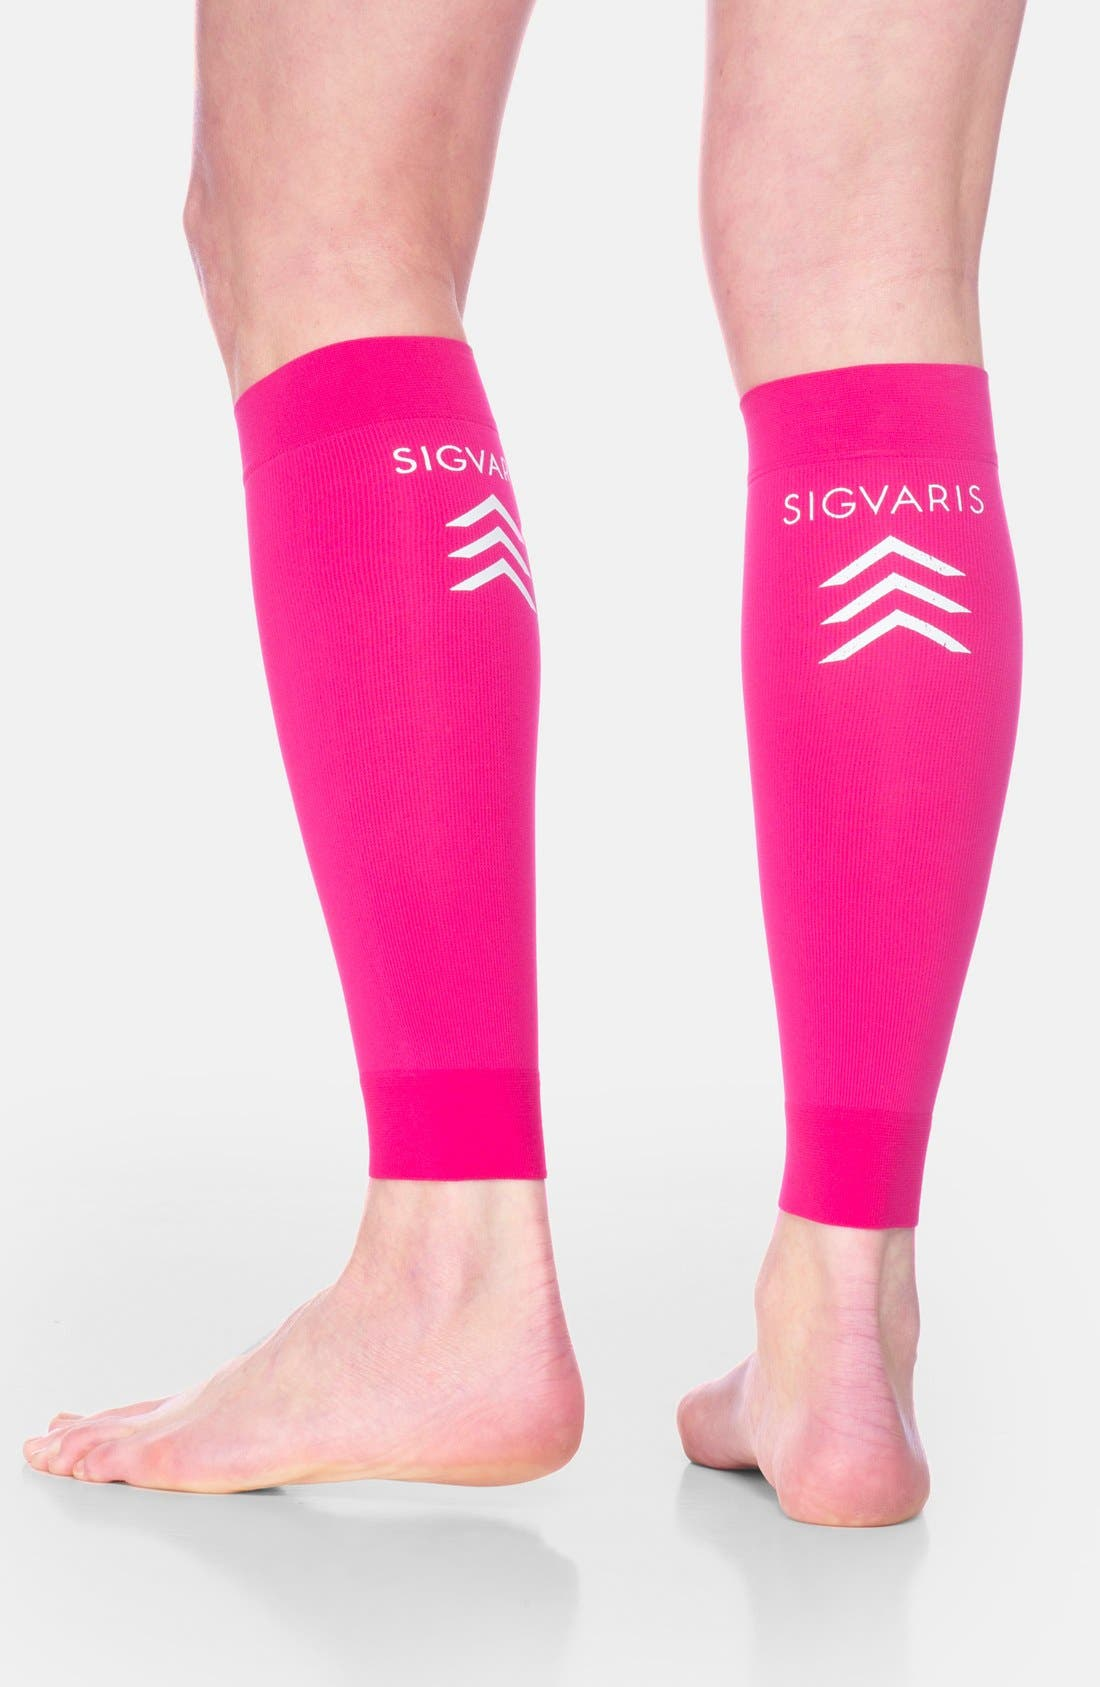 INSIGNIA by SIGVARIS Graduated Compression Calf Sleeves